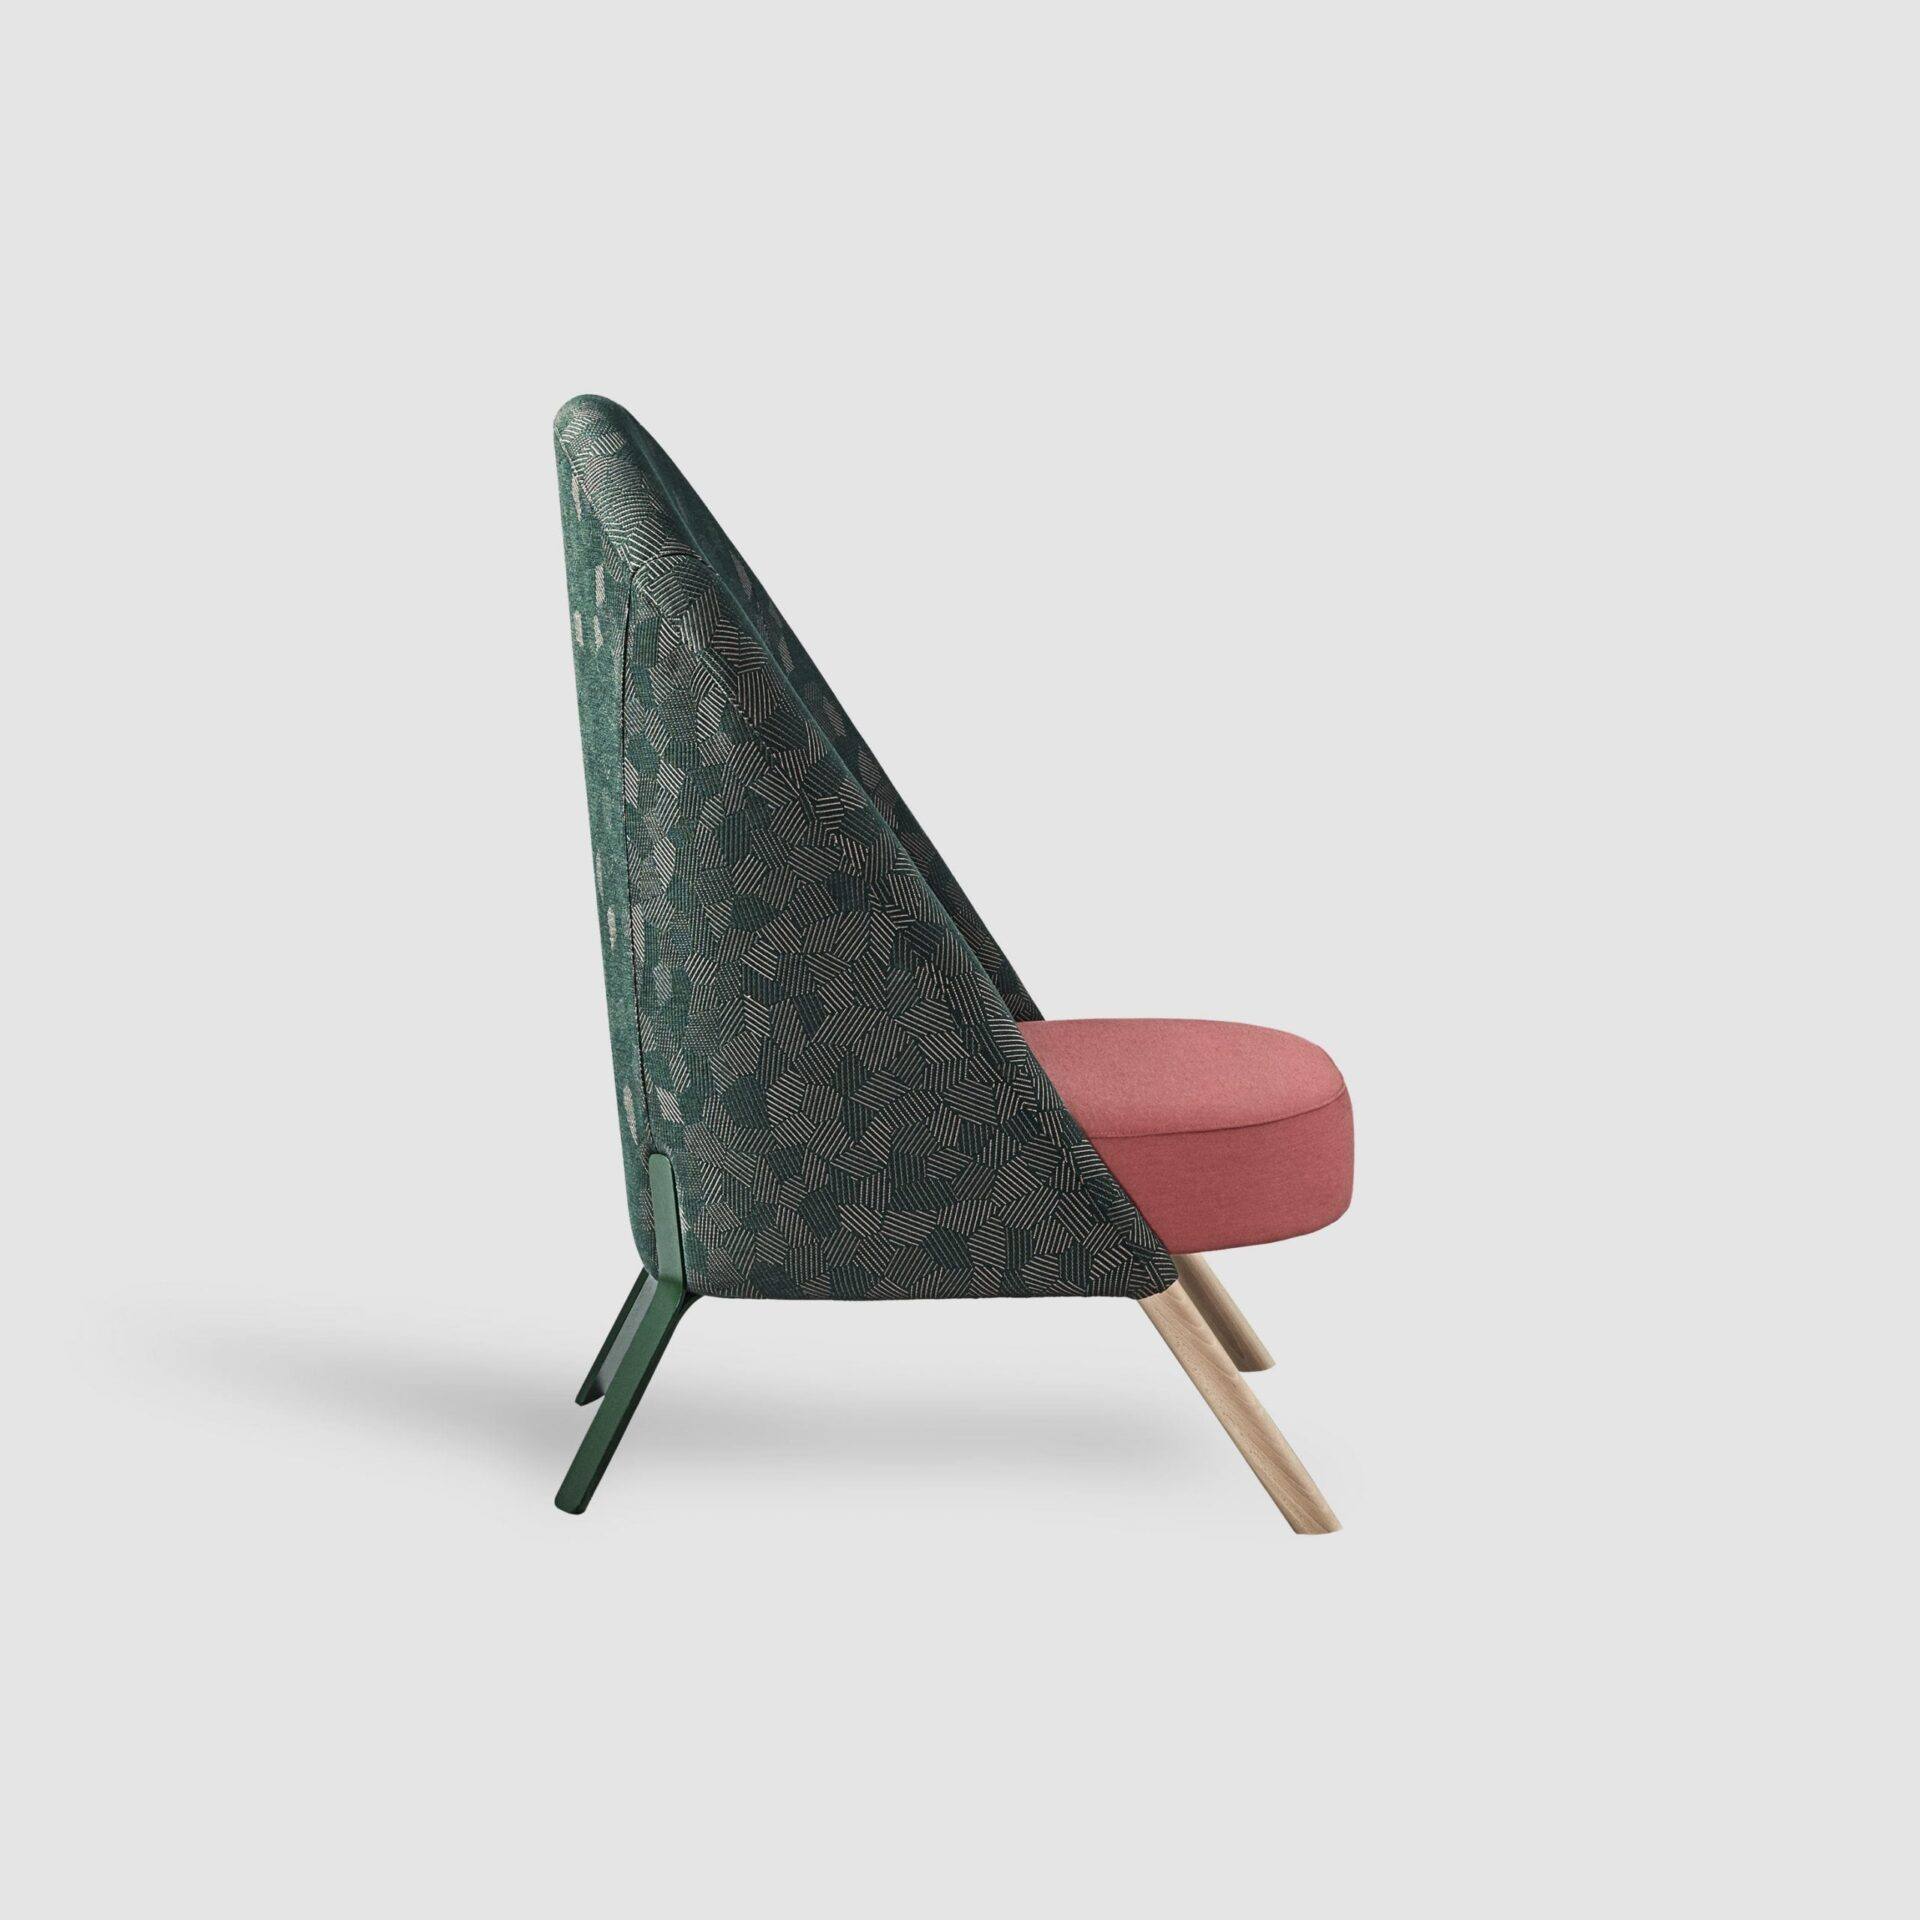 okapi-armchair-contract-project-furniture-work-furniture